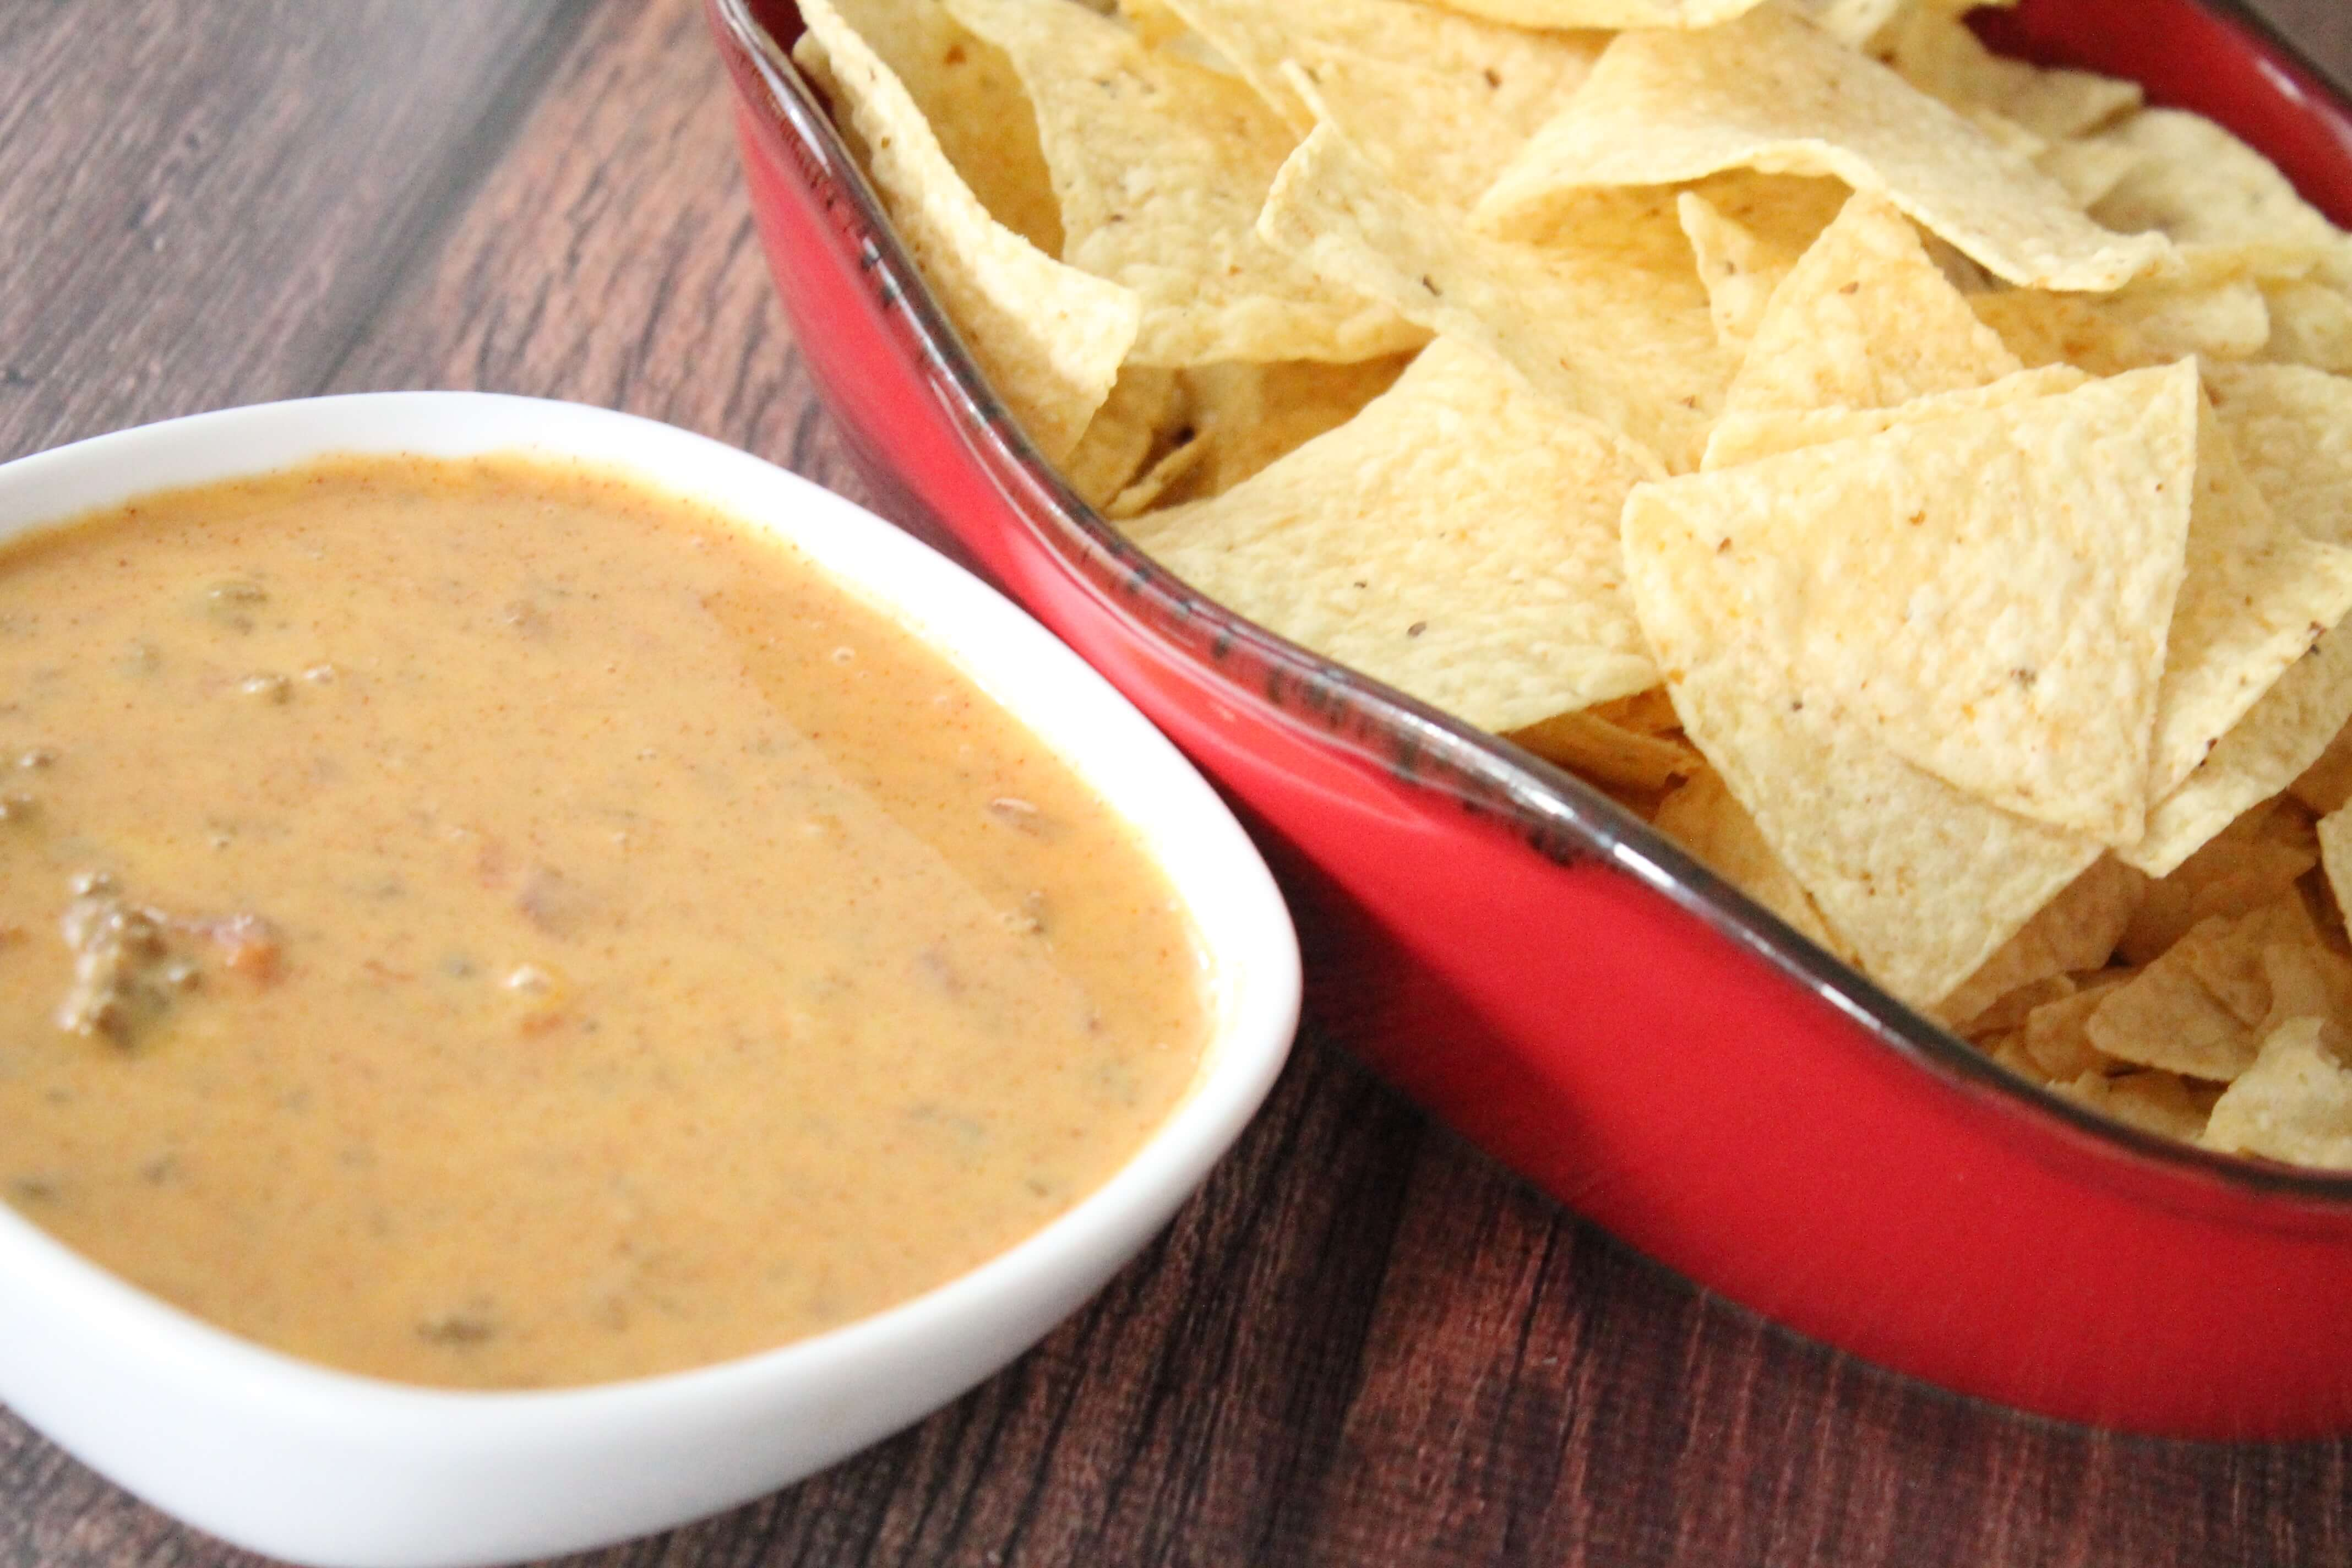 This Crockpot Party Queso Recipe is delicious and SUPER easy to make! If you're having a party of any kind or you just have a big family, give this awesome recipe a try!